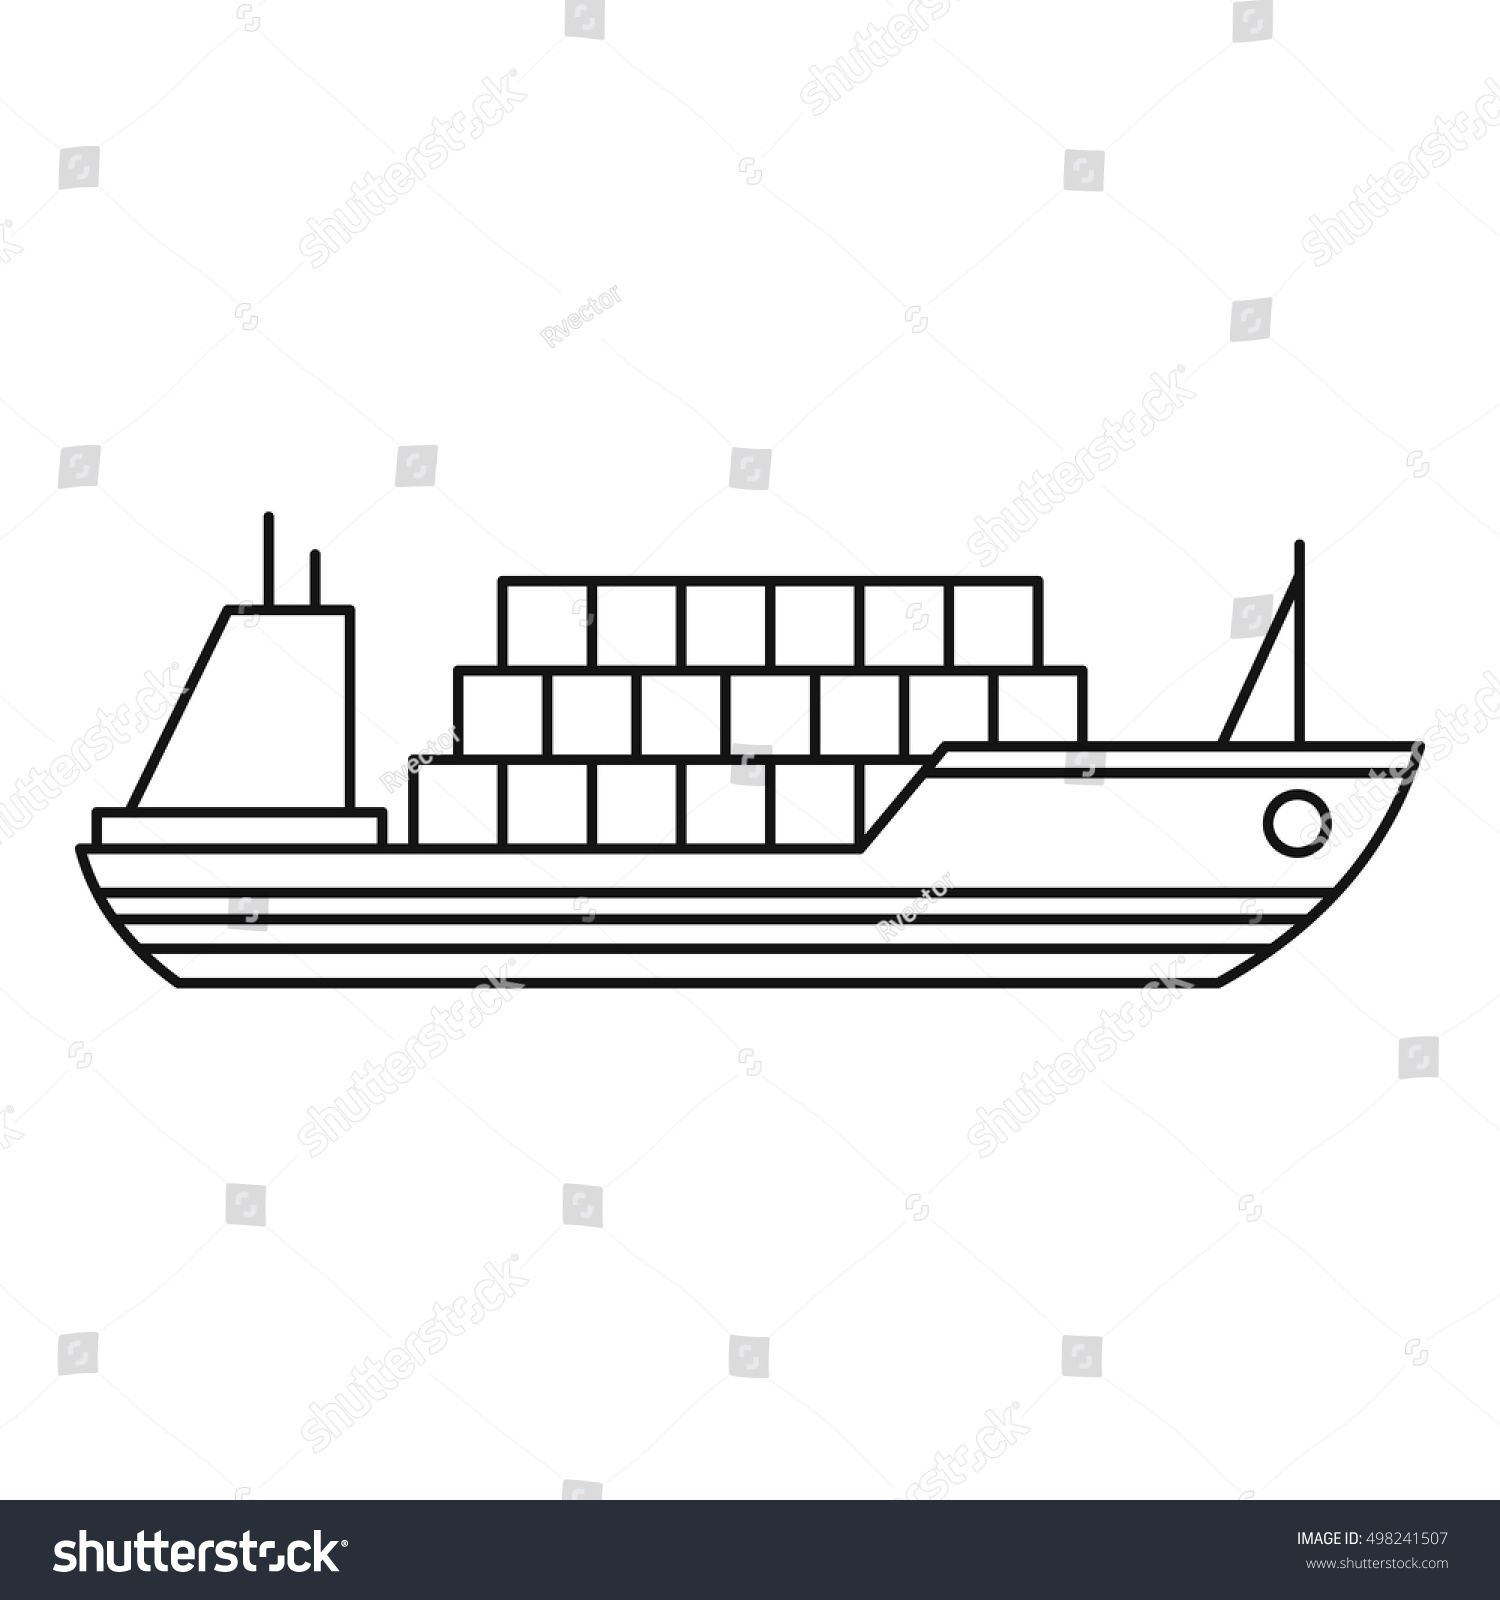 Ship Cargo Icon Outline Illustration Cargo Stock Vector ...